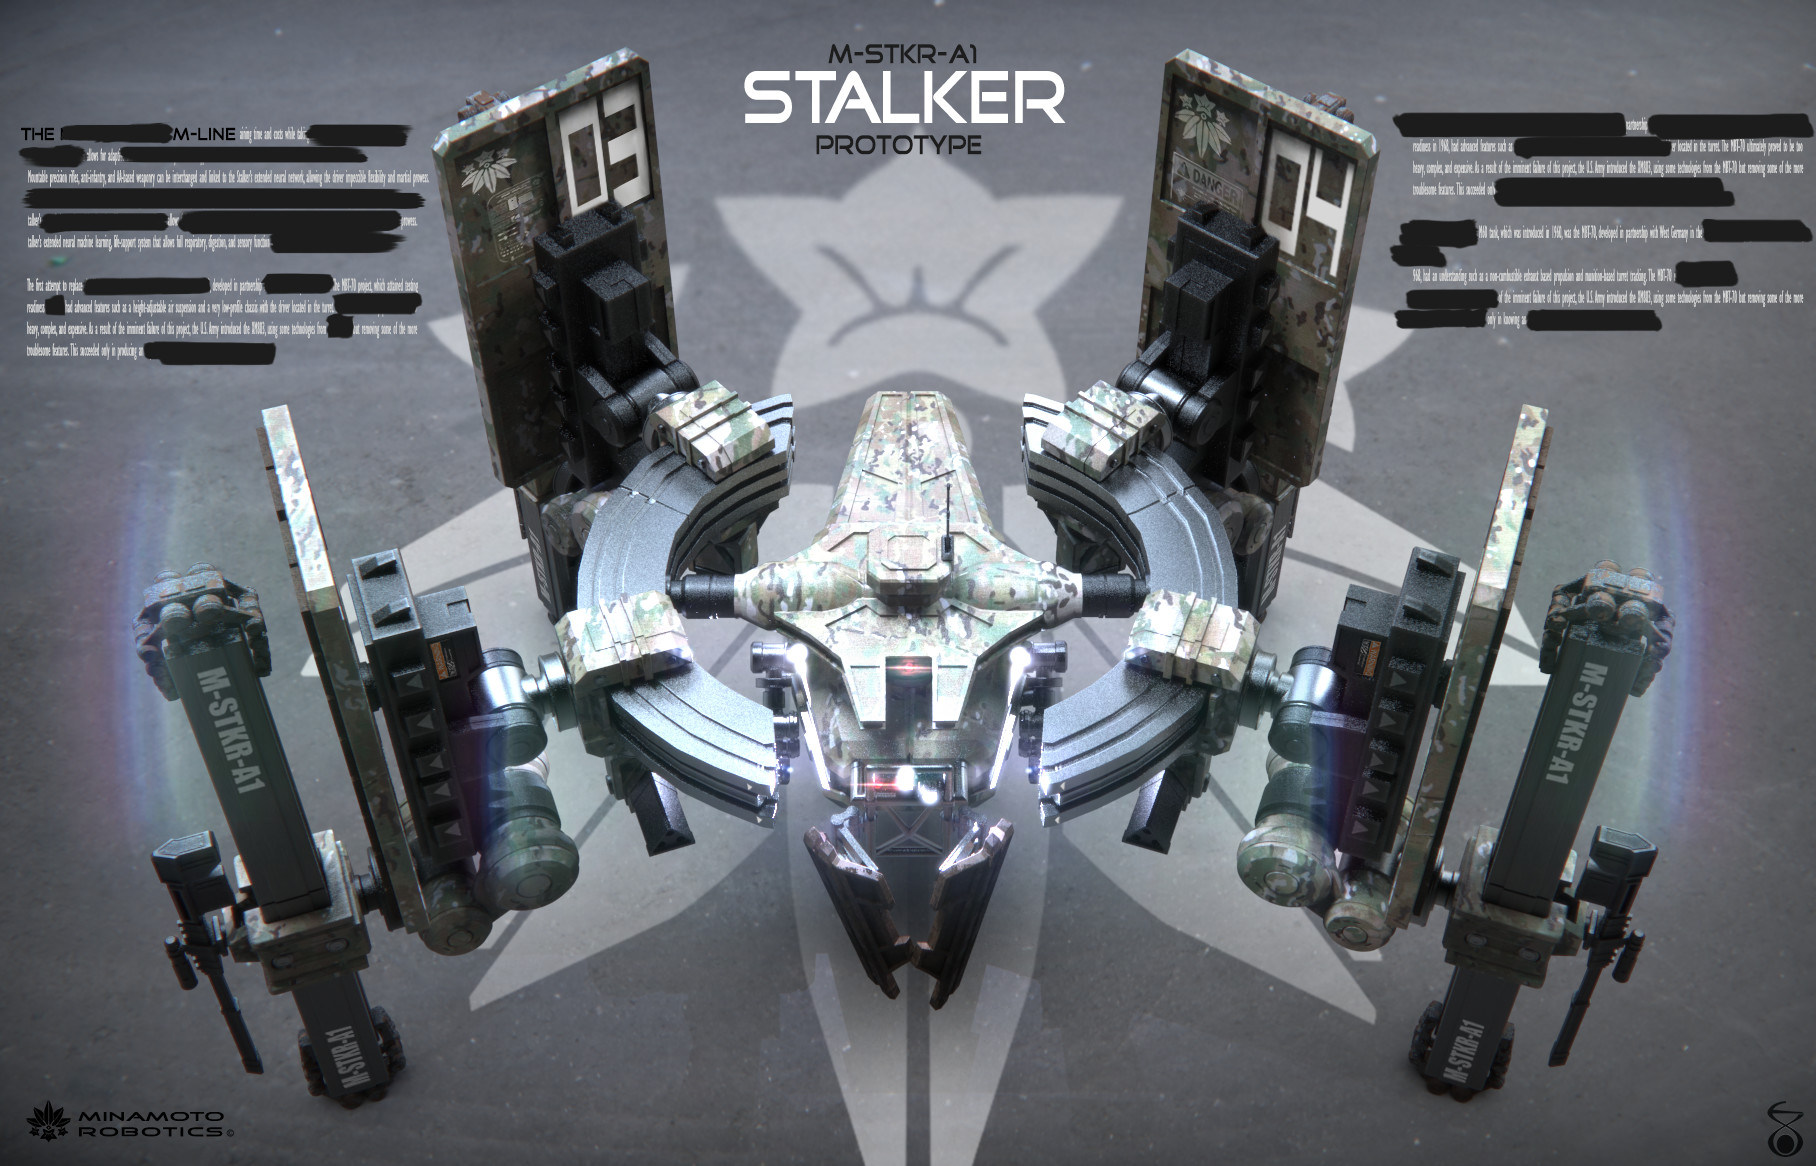 The Stalker was the last human-piloted weapon manufactured by Minamoto Robotics before the company was managed by Michael Minamoto's daughter, and Neuro-technologist, Kym Minamoto.